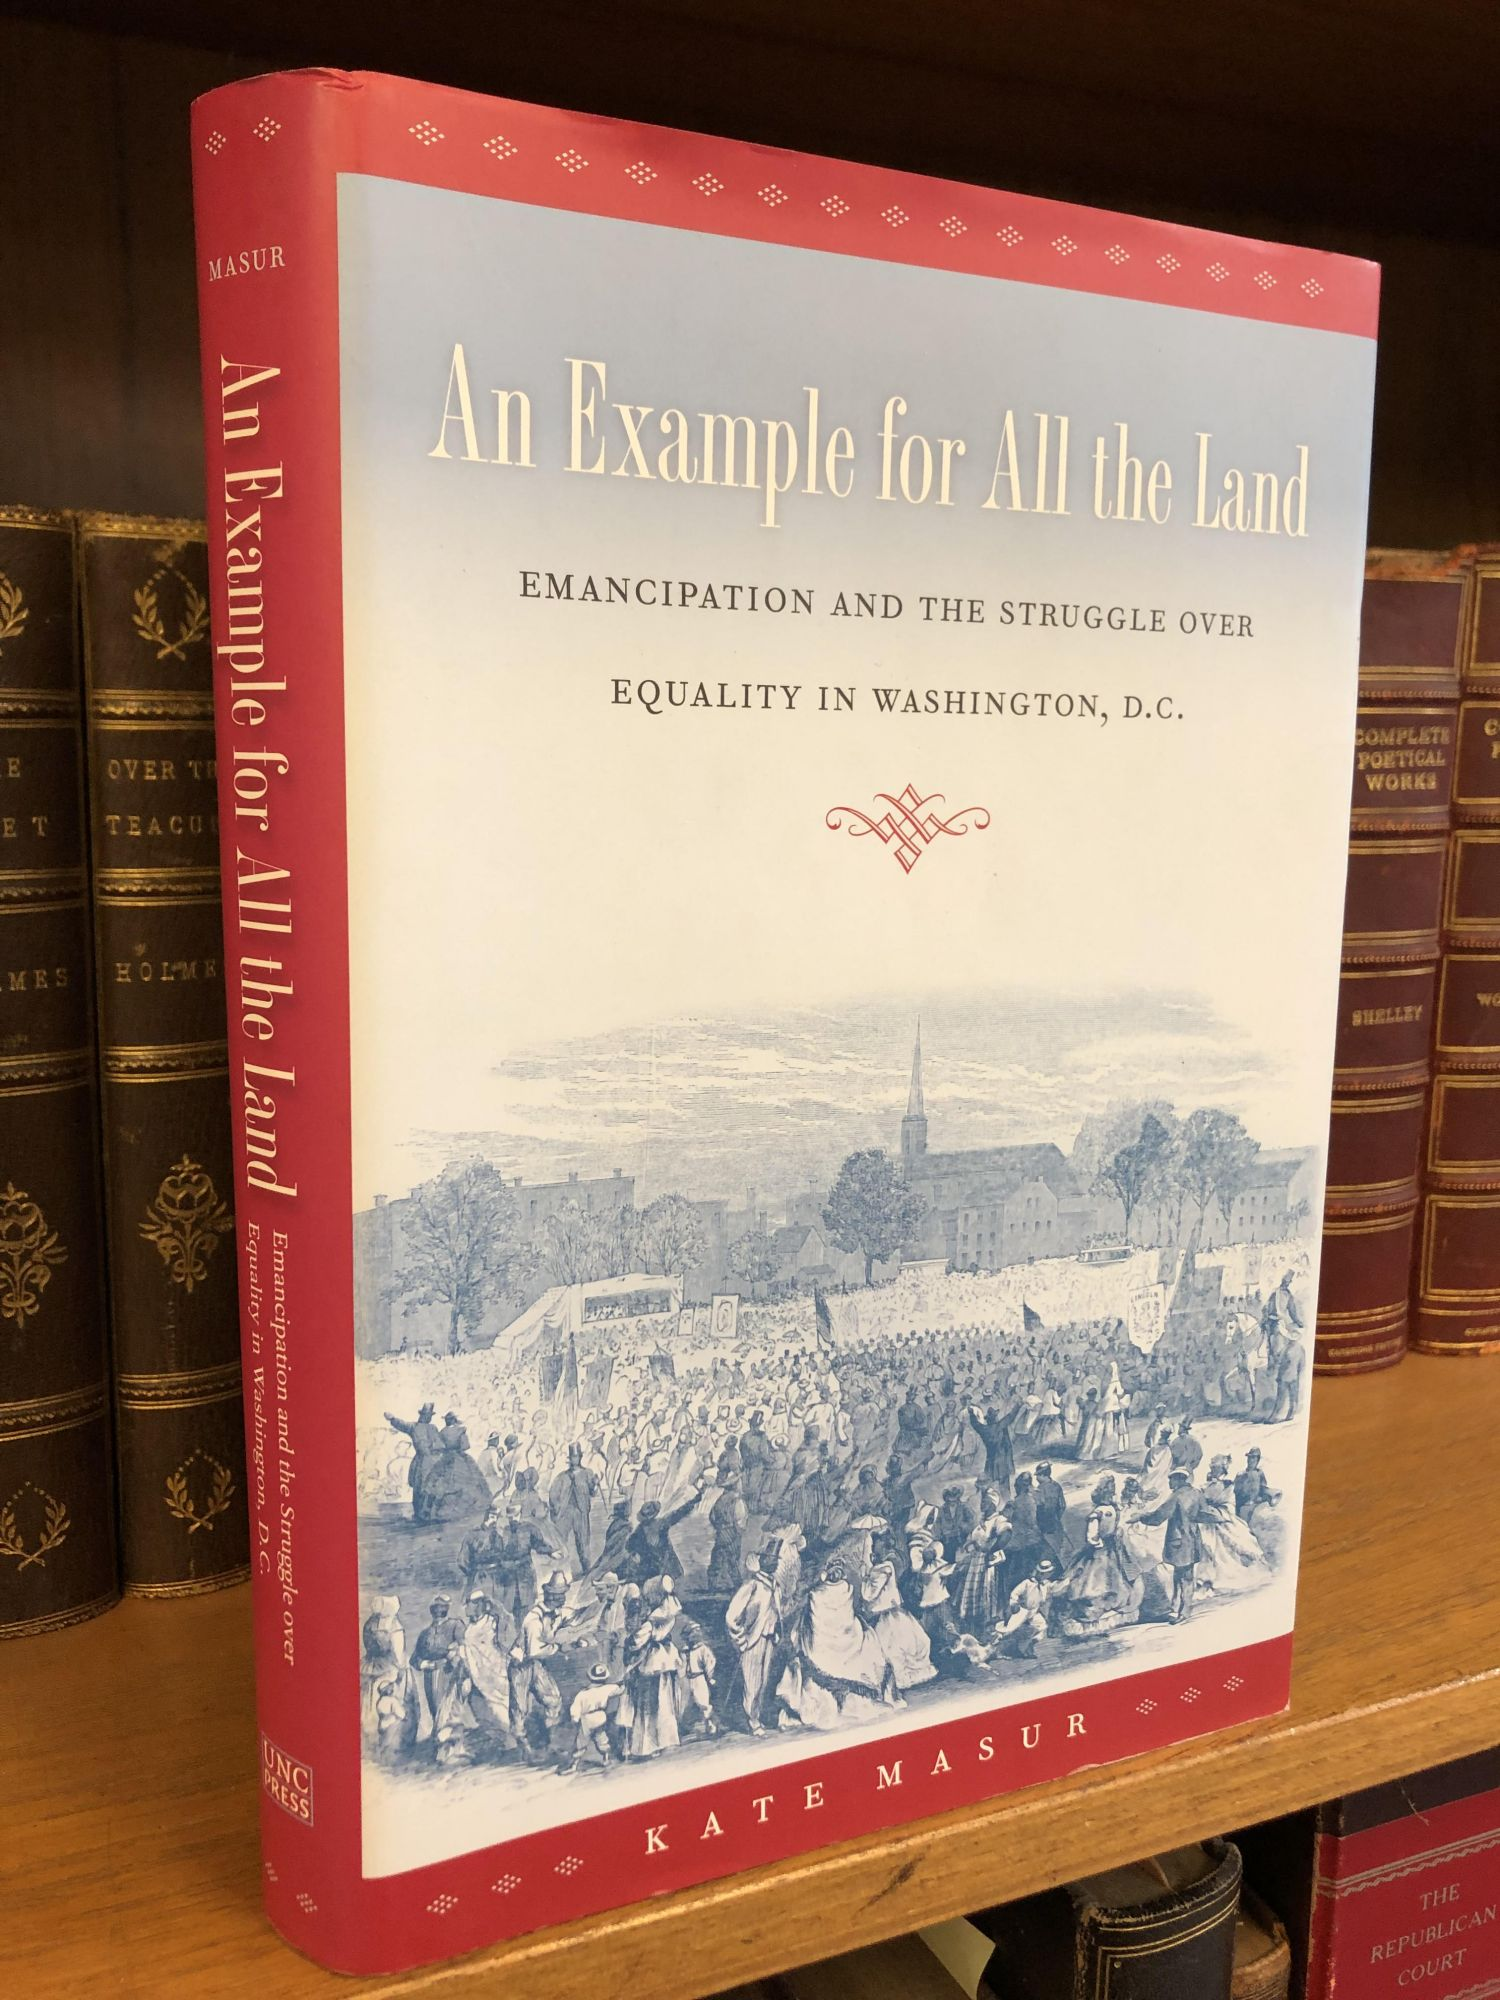 AN EXAMPLE FOR ALL THE LAND: EMANCIPATION AND THE STRUGGLE OVER EQUALITY IN WASHINGTON, D.C. [SIGNED]. Kate Masur.